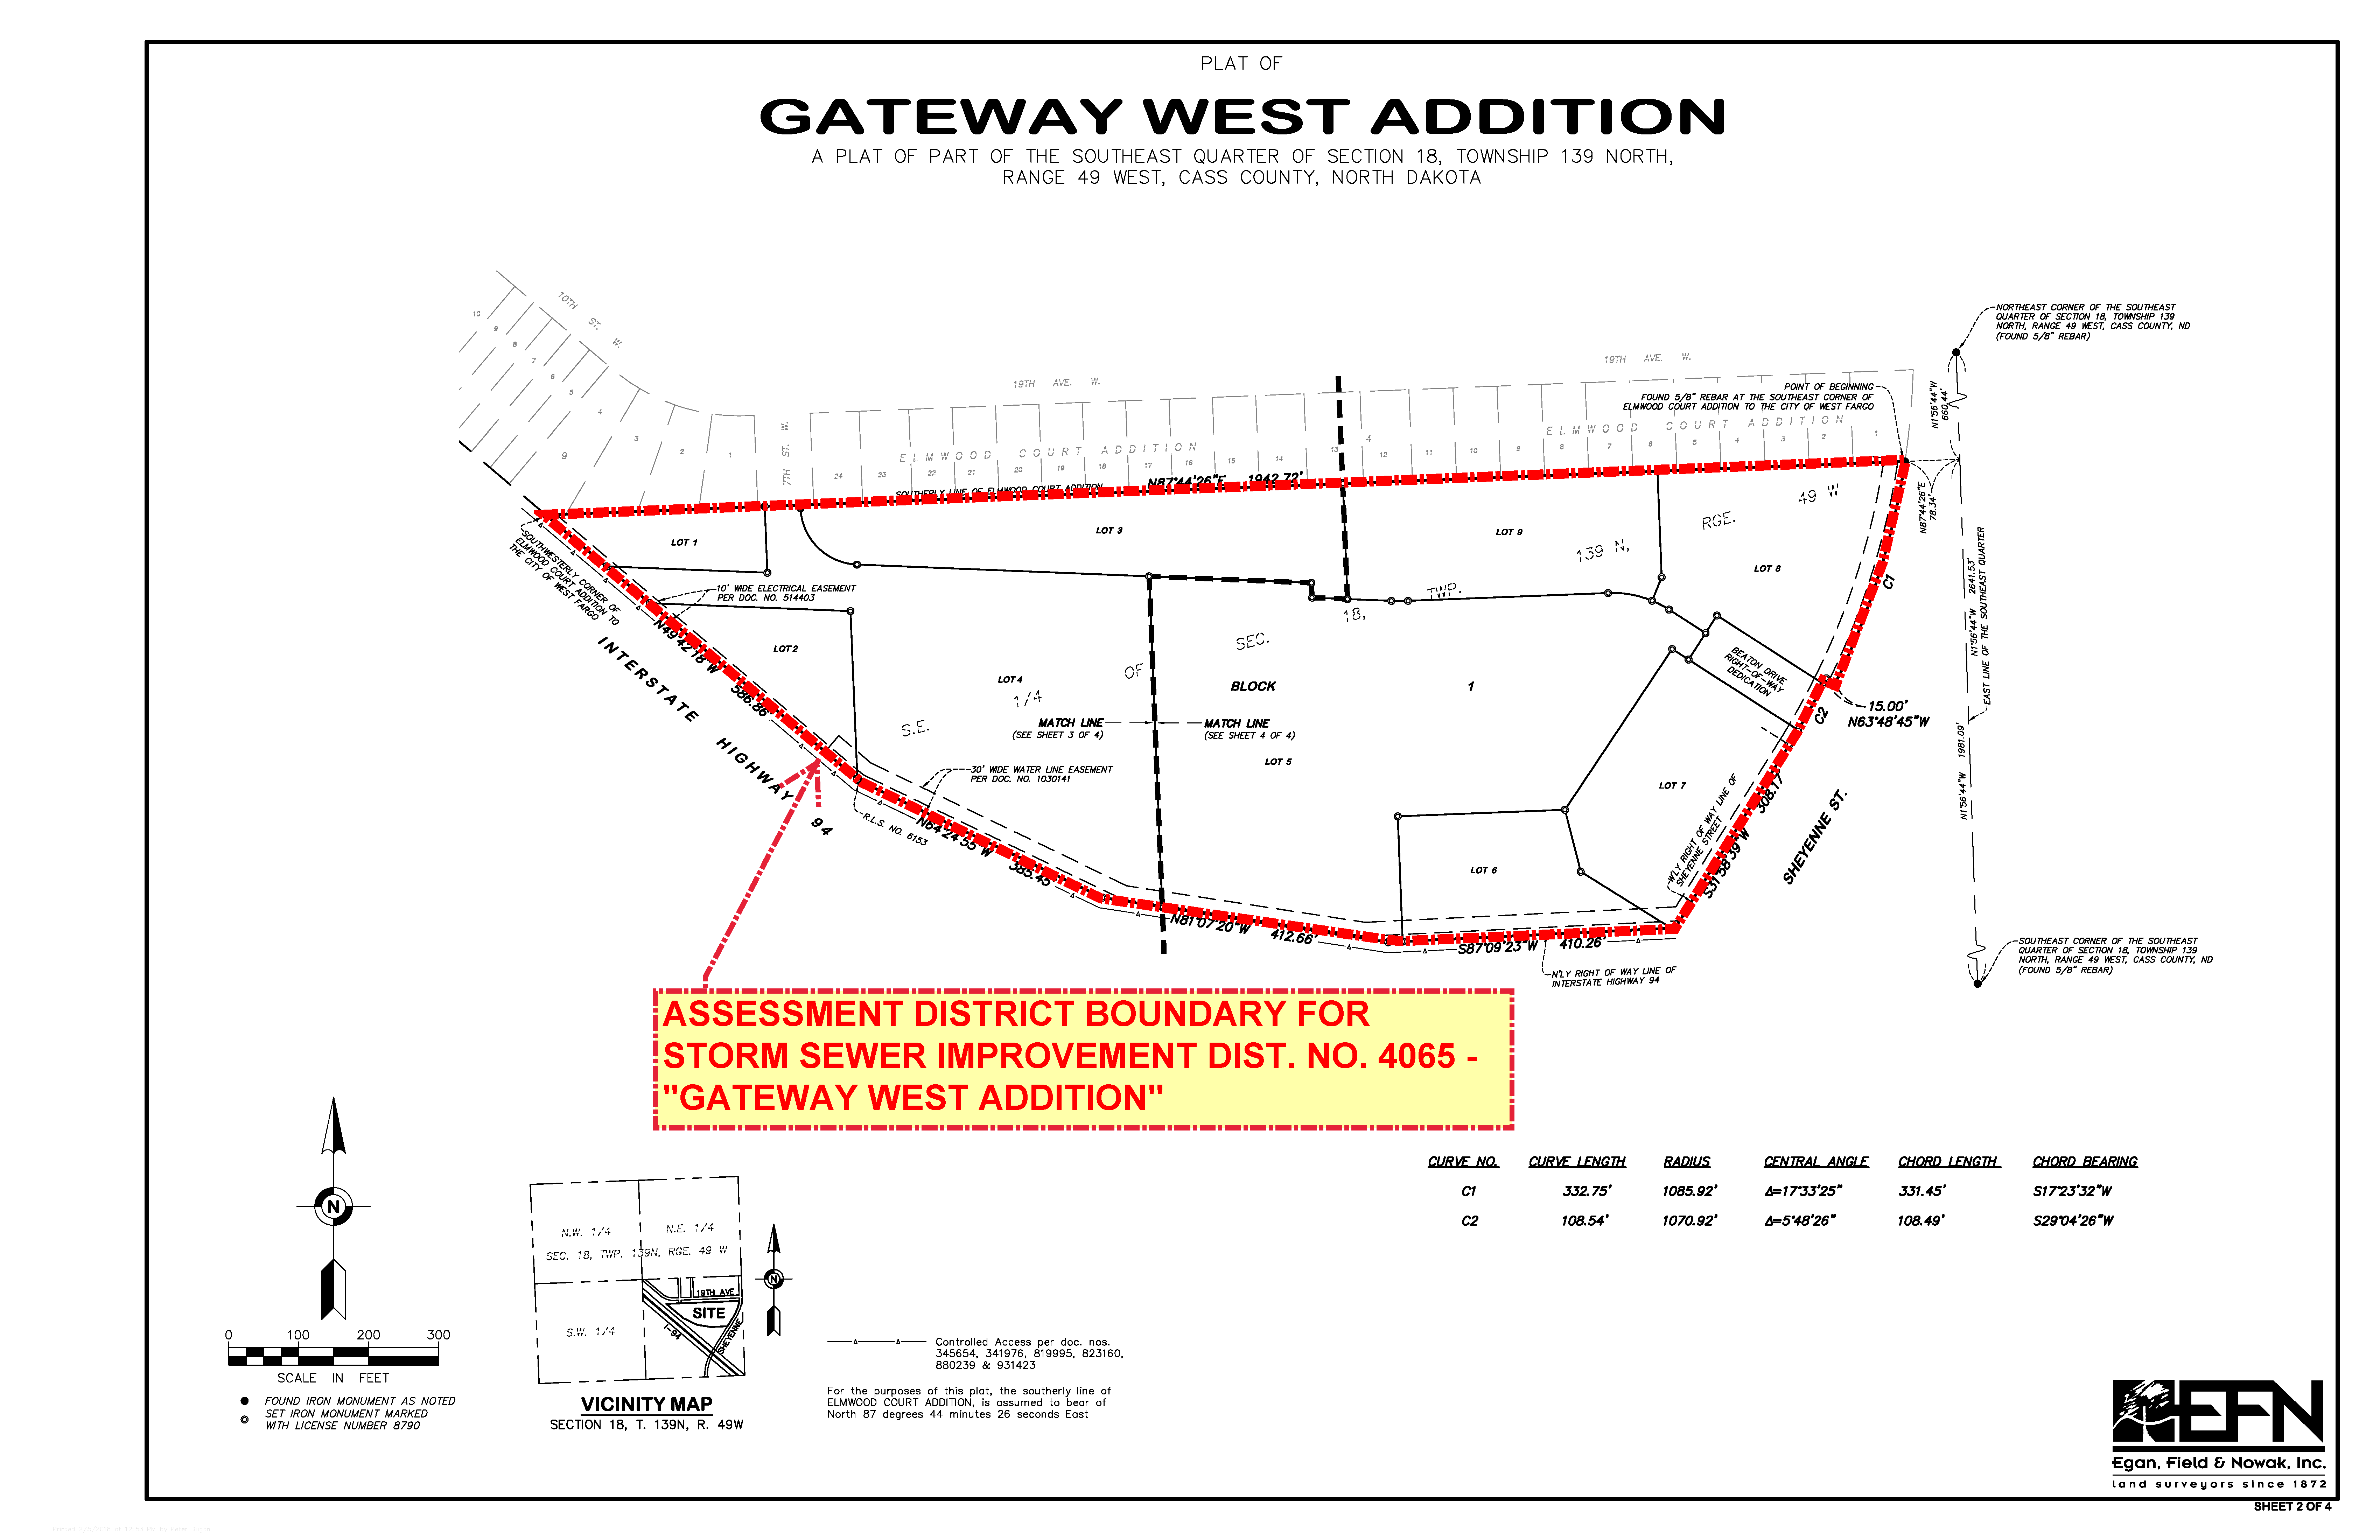 District No. 4065 Gateway West Additional Assessment District Boundary Map